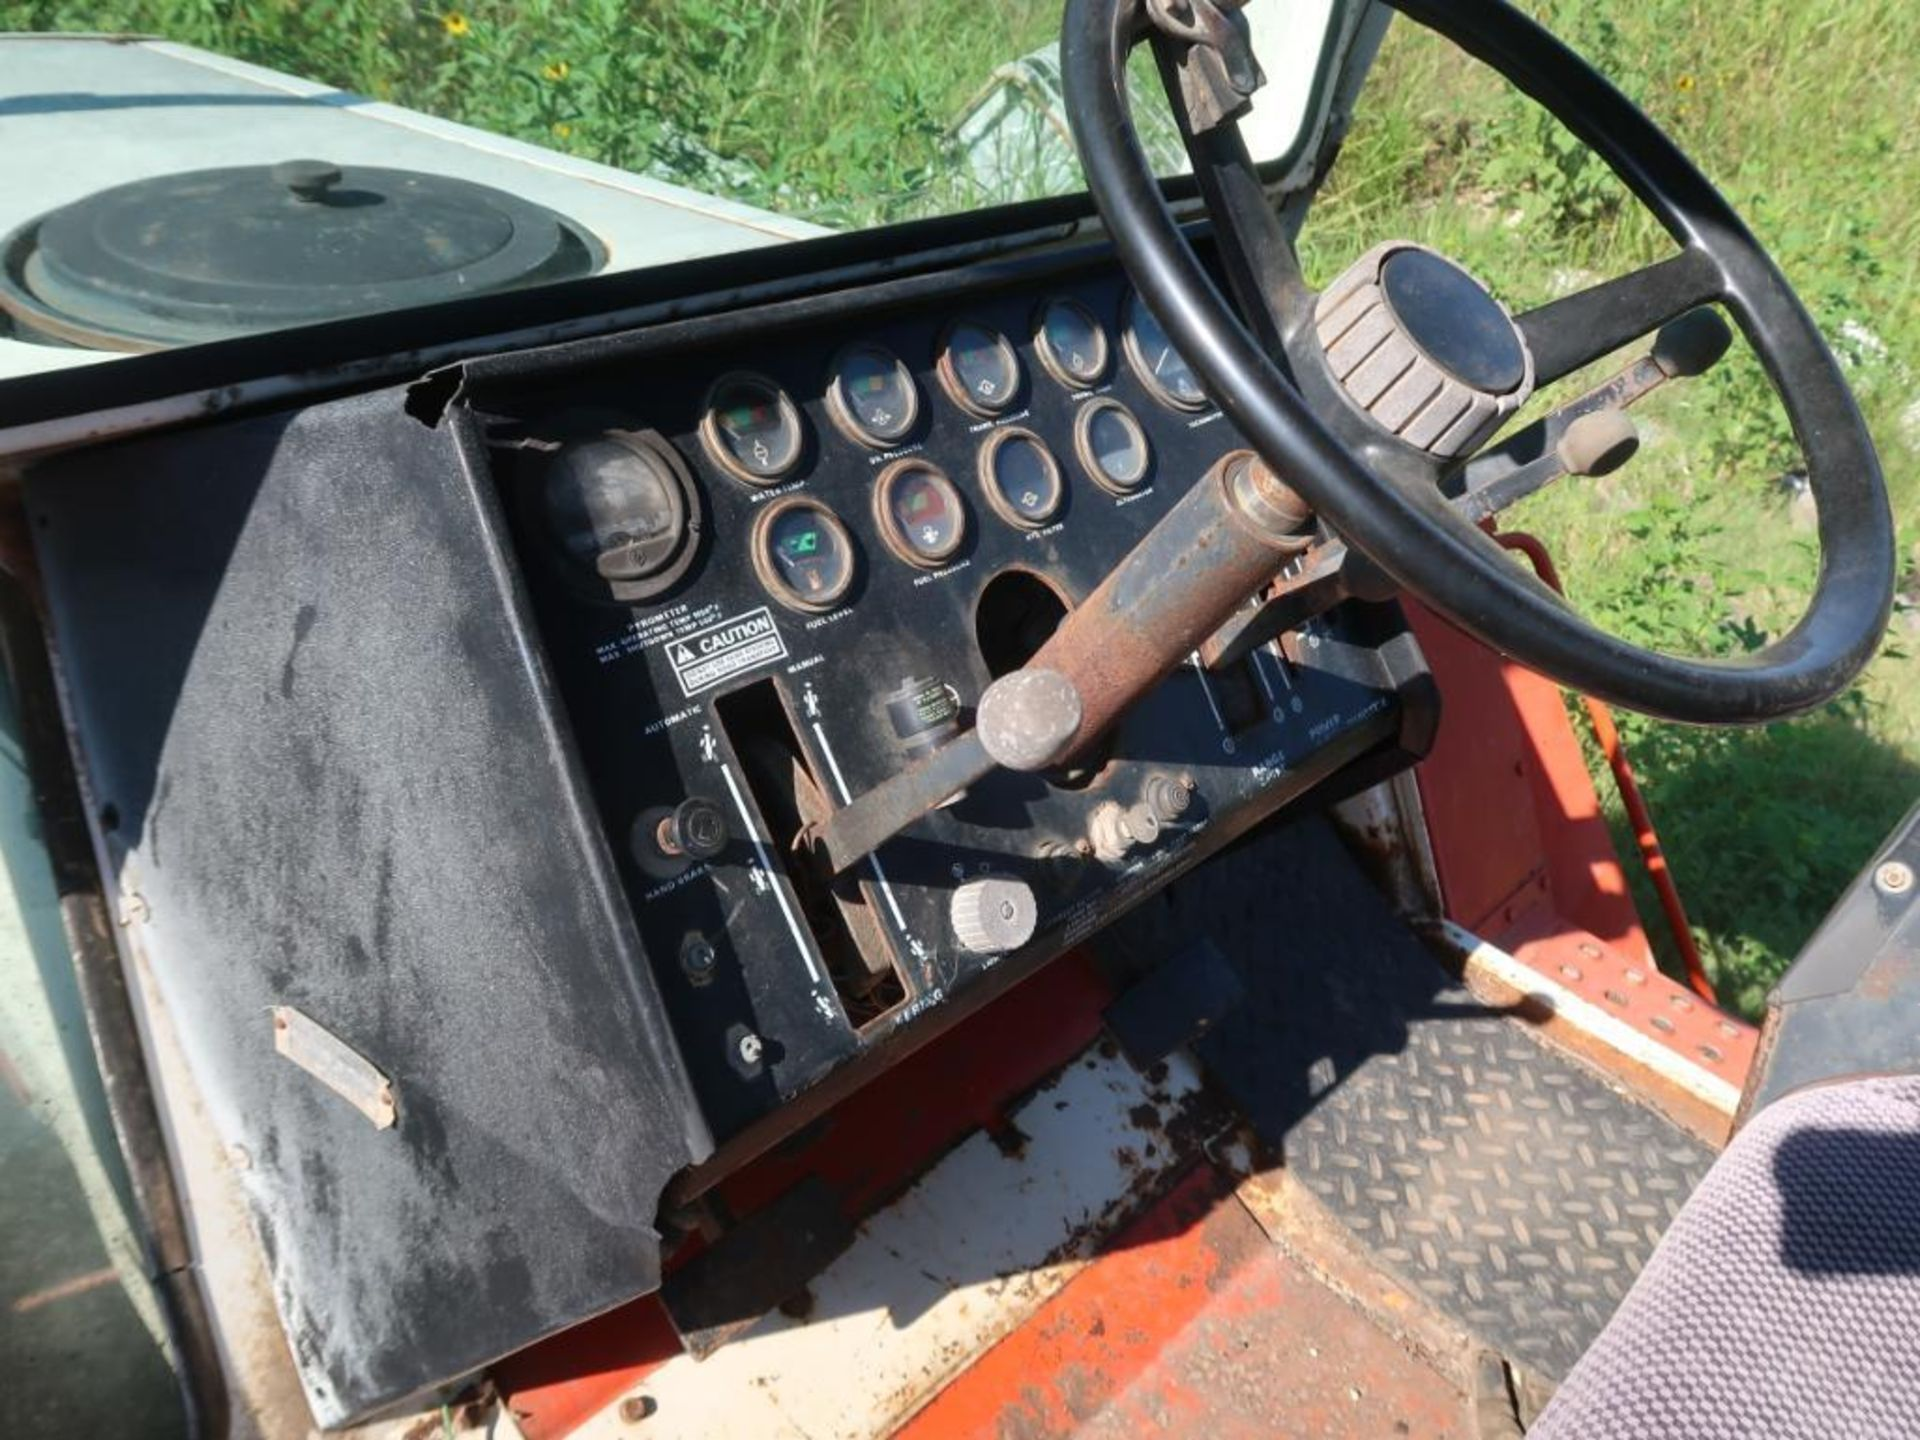 1974 Case Tractor Model 2470, S/N 8762465 (hole in block) (LOCATED IN ARDMORE, OK.) - Image 5 of 6